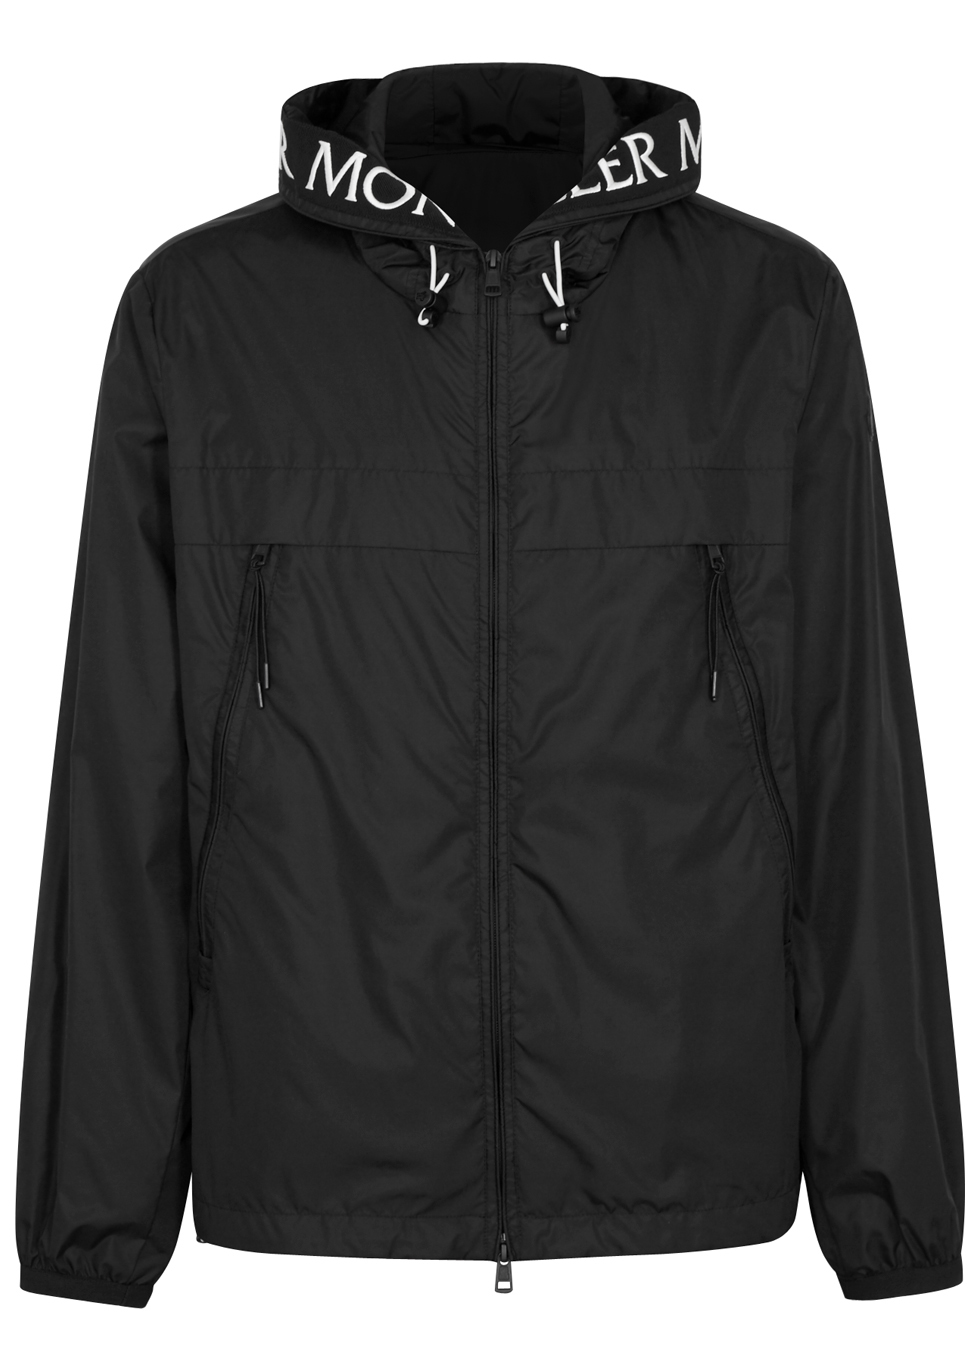 moncler black hooded jacket